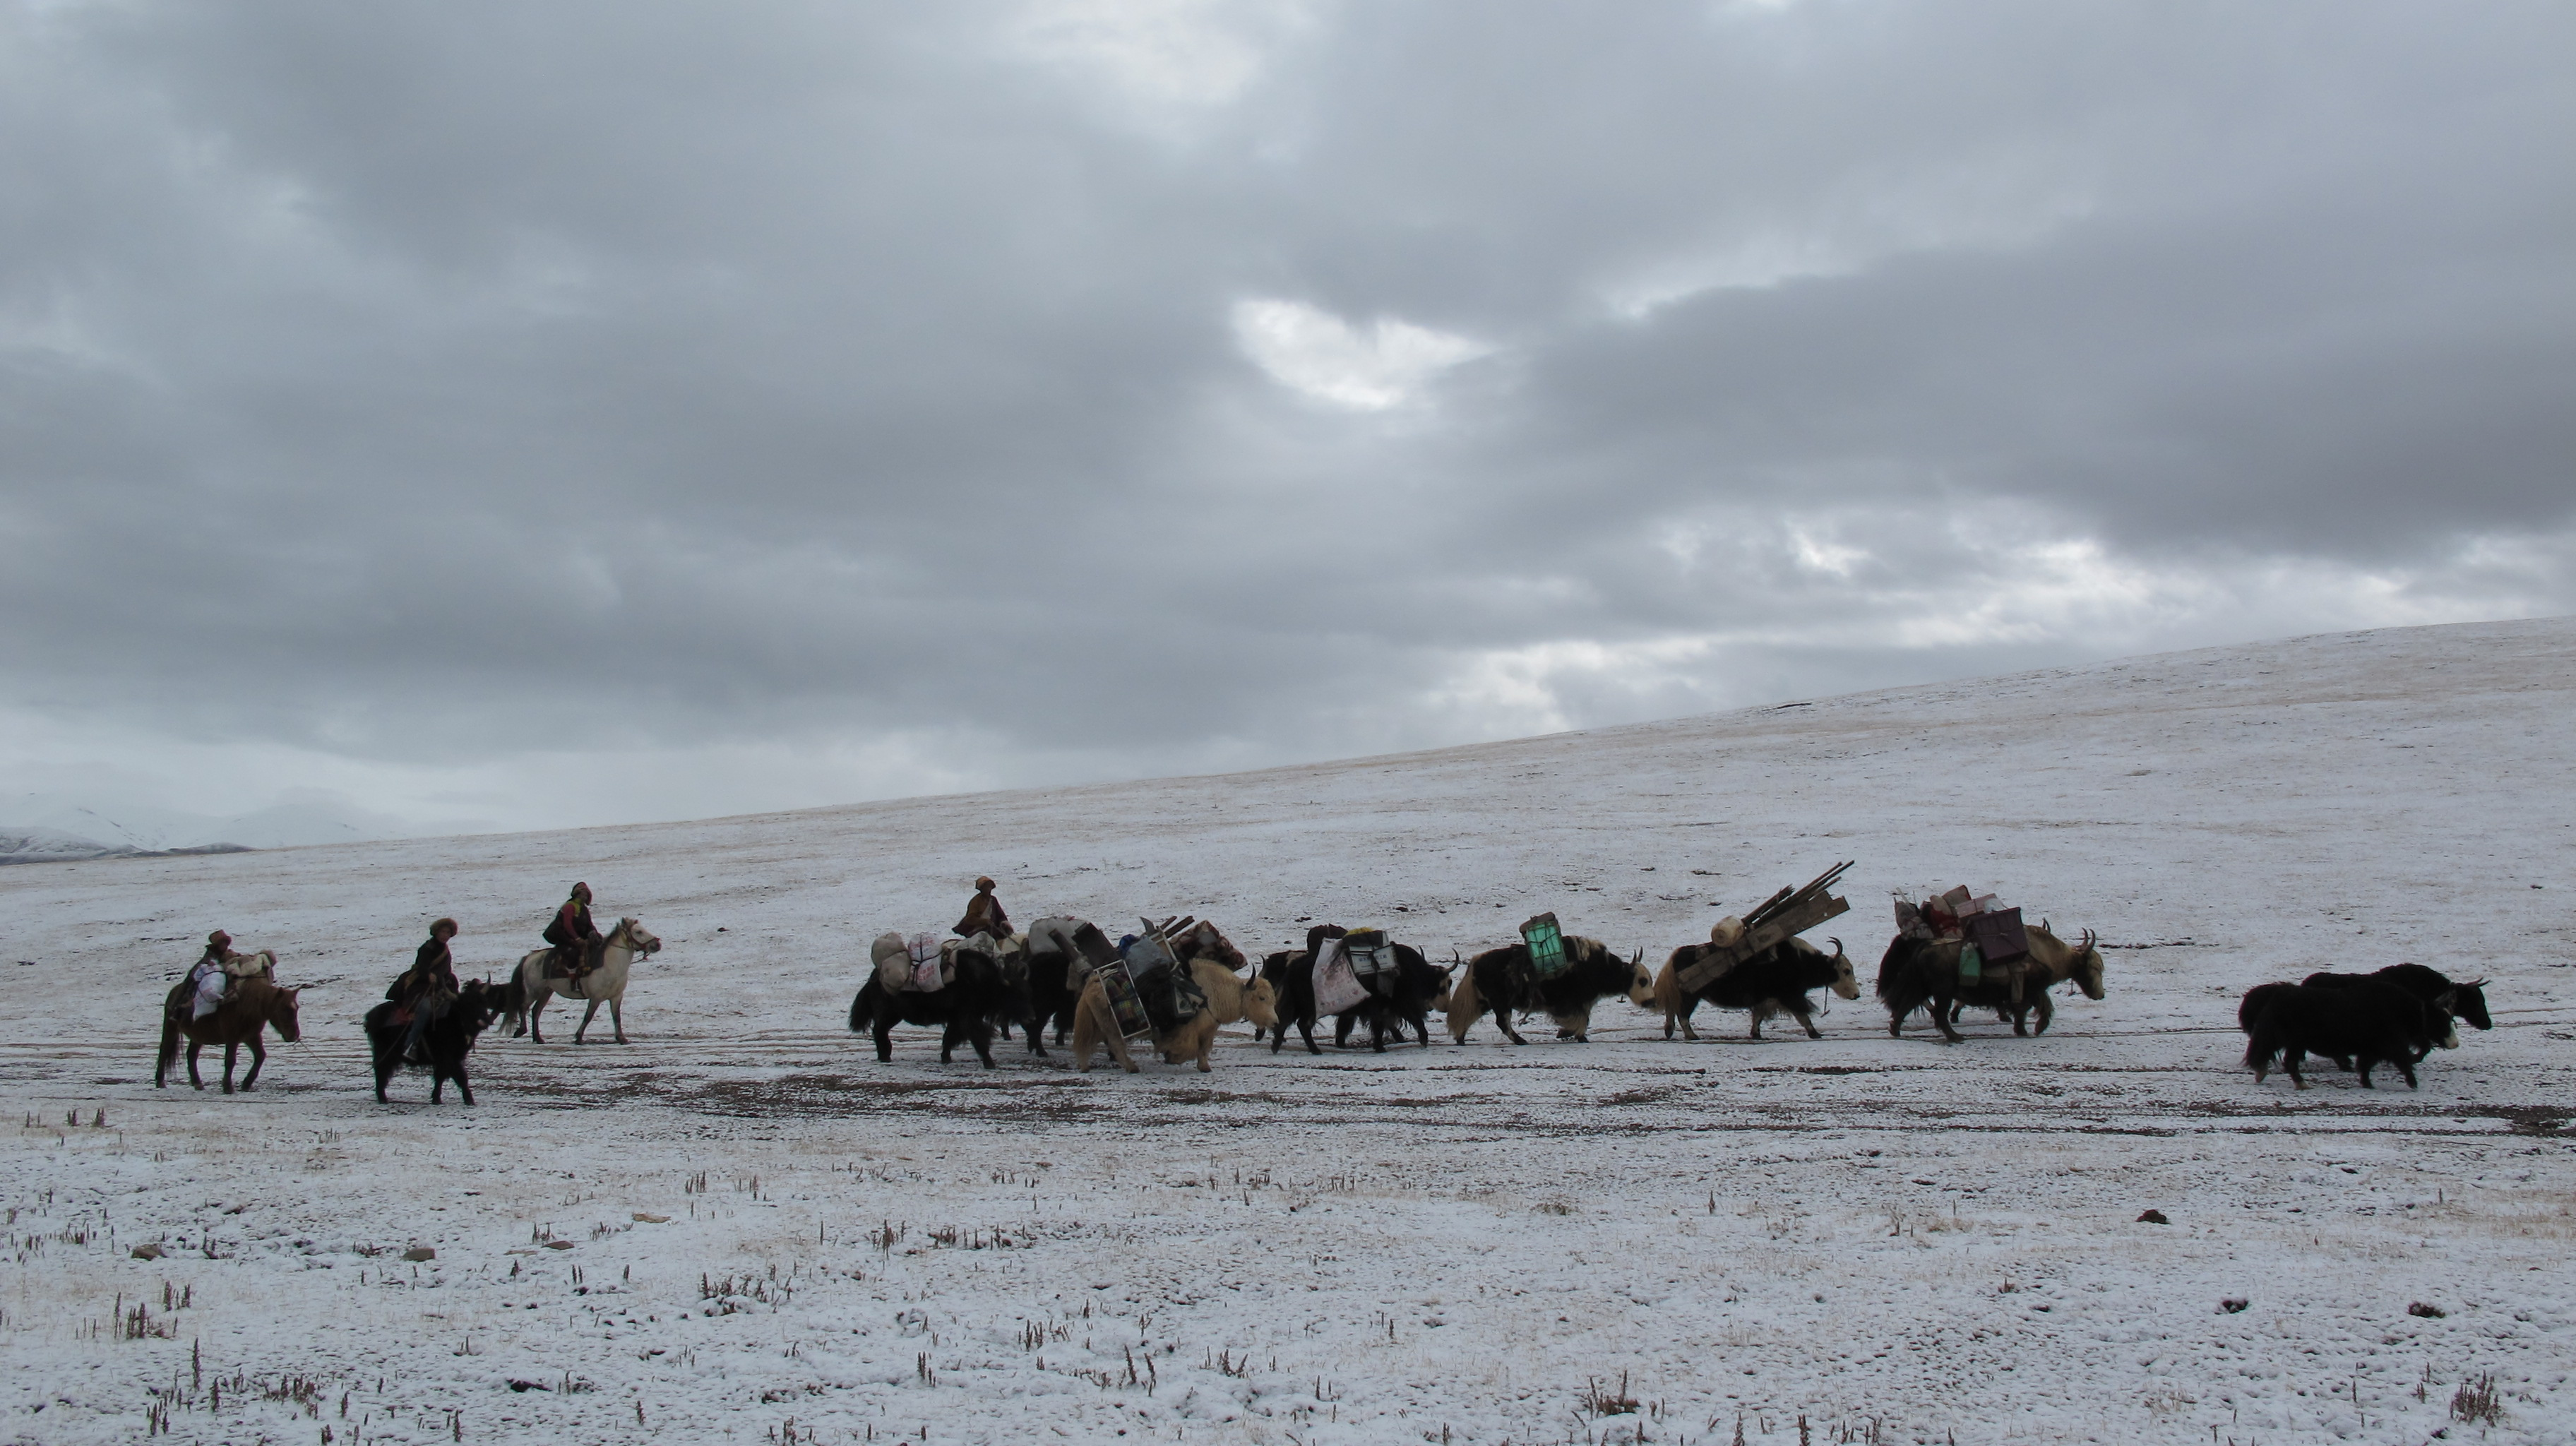 Nomads moving their home